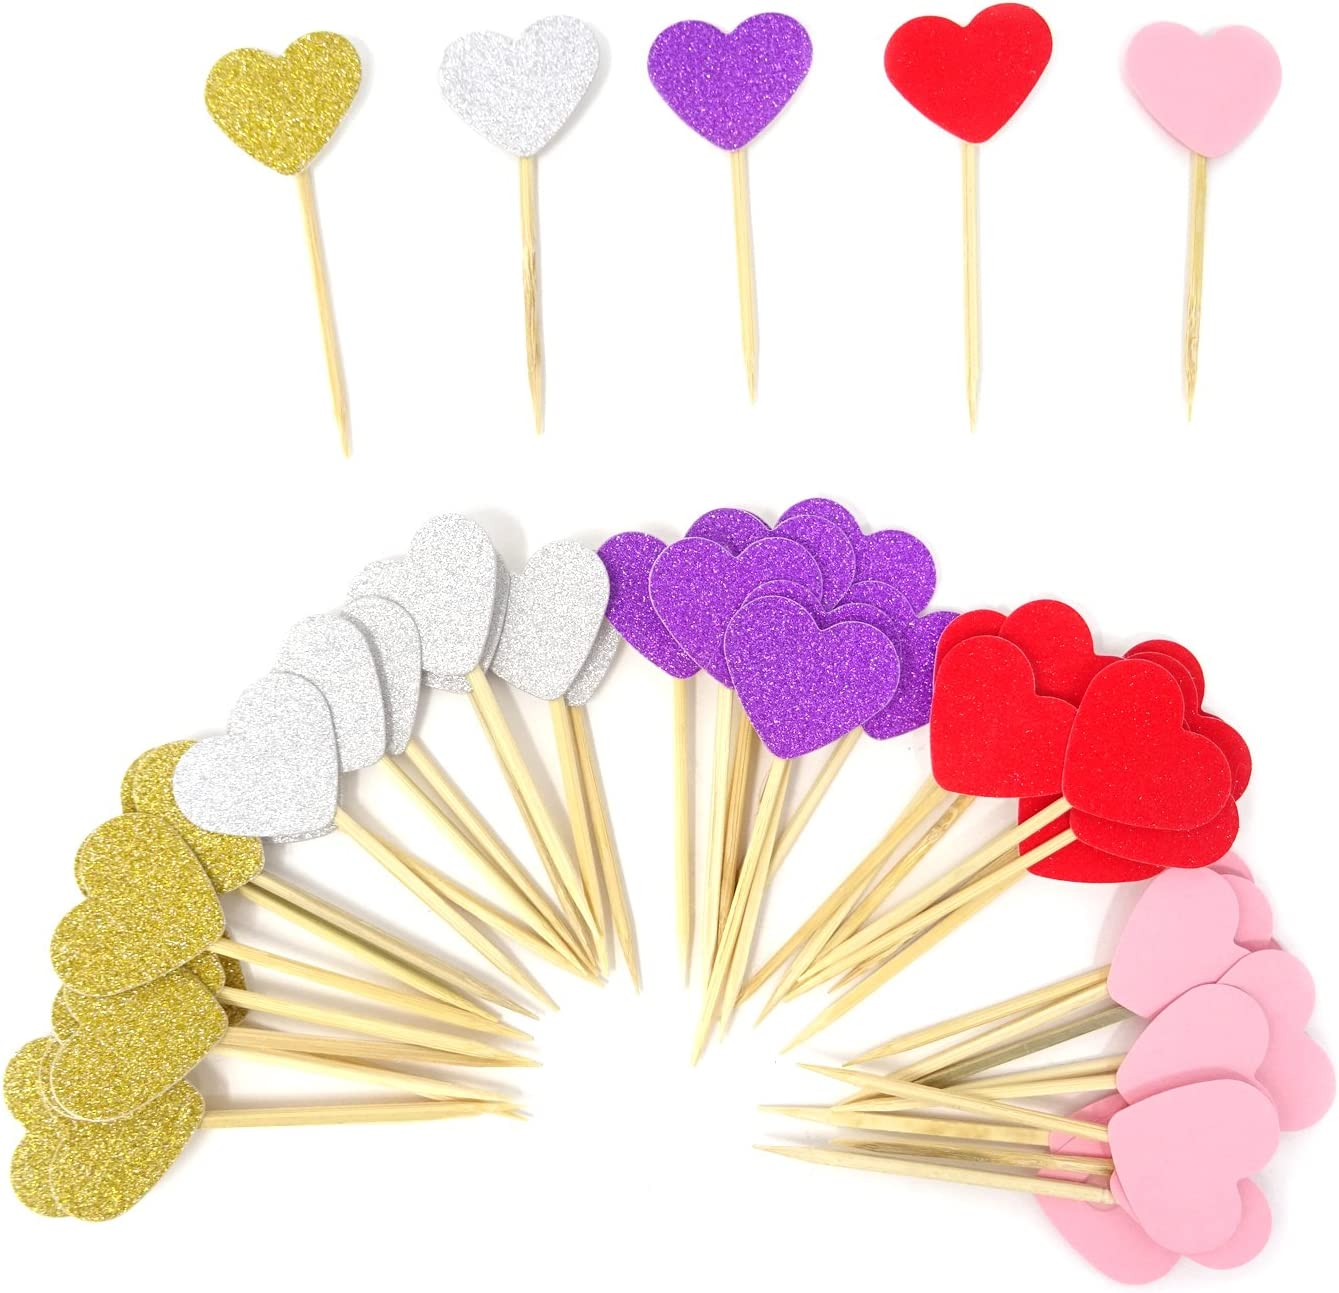 HONBAY 50PCS Glitter Heart Cupcake Toppers Birthday Cake Decoration Food Picks Wedding Party Baby Shower Supplies - Red Series